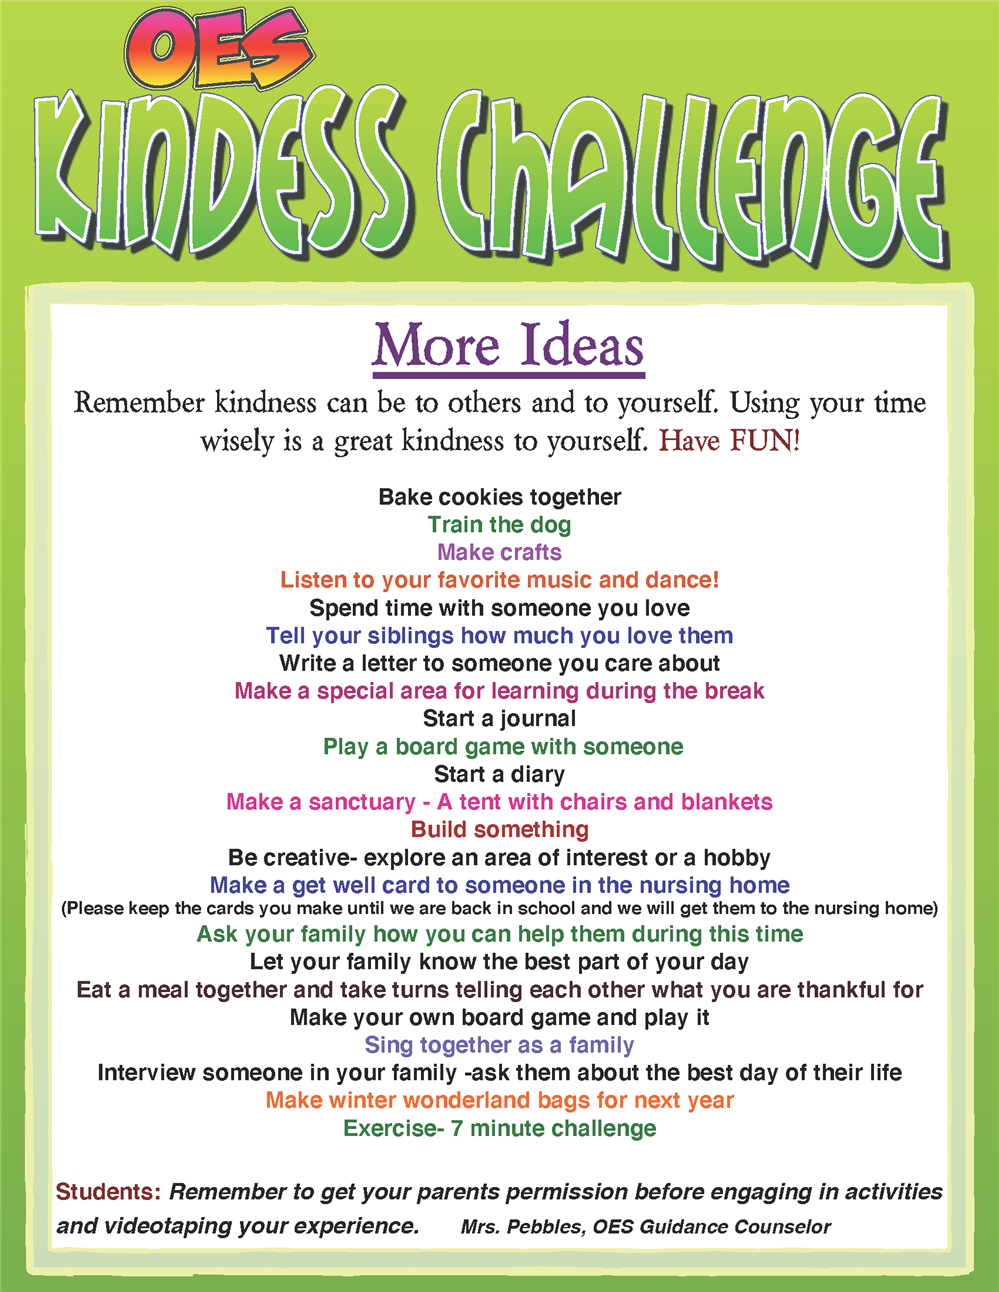 NEW* Kindness Challenge: More Ideas from our Guidance Counselor Mrs Pebbles Peterson